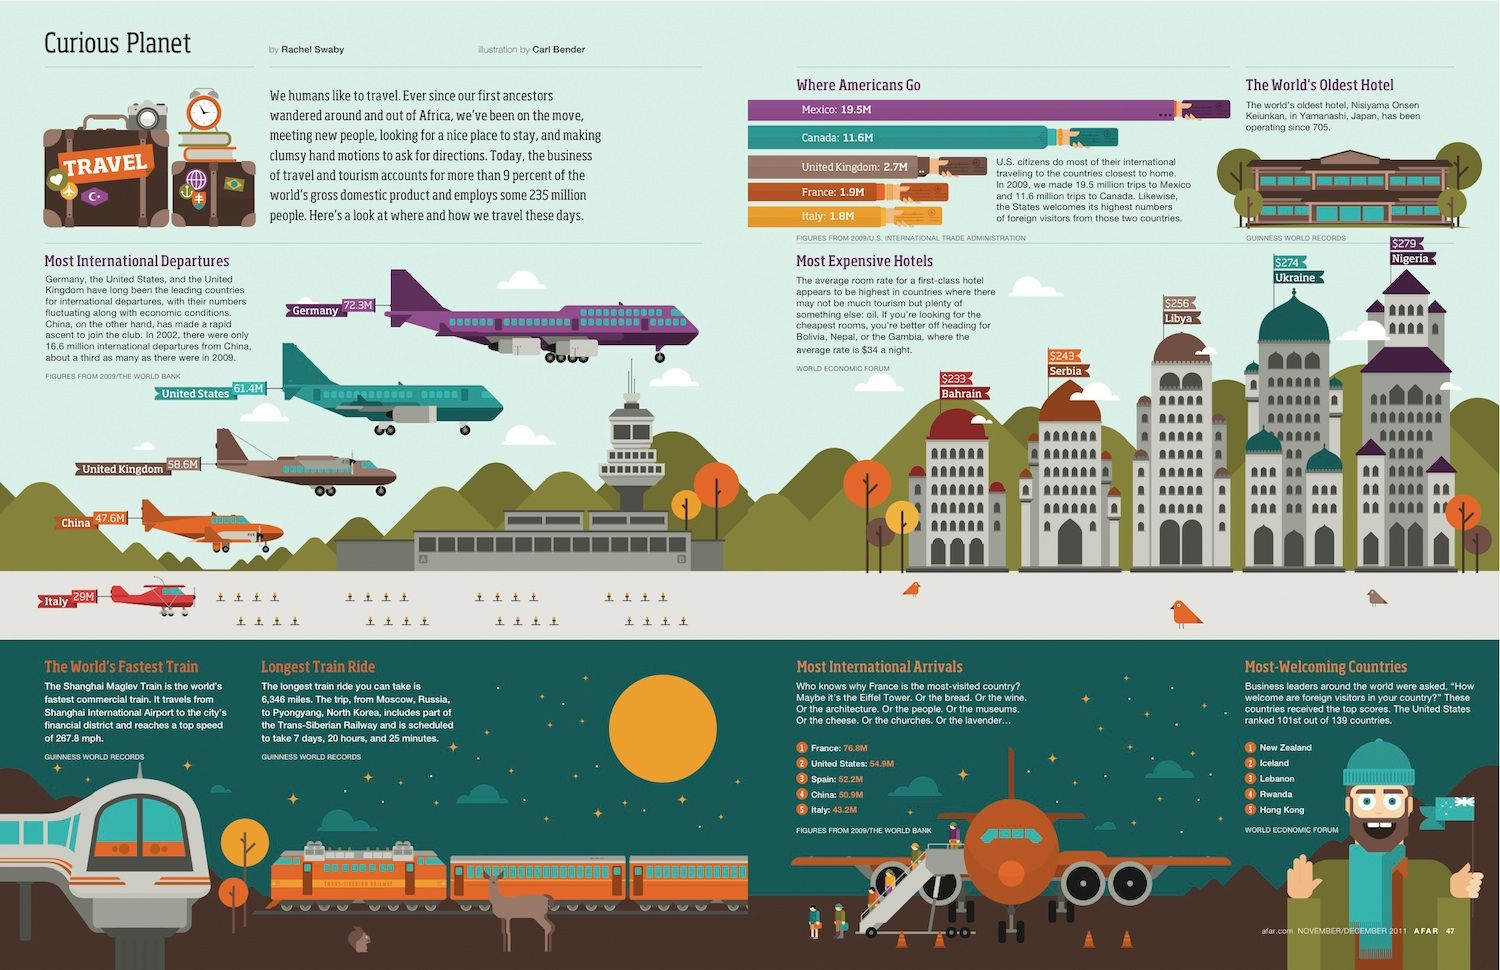 Cassanelli Mobili ~ Curious planet: where and how we travel [infographic